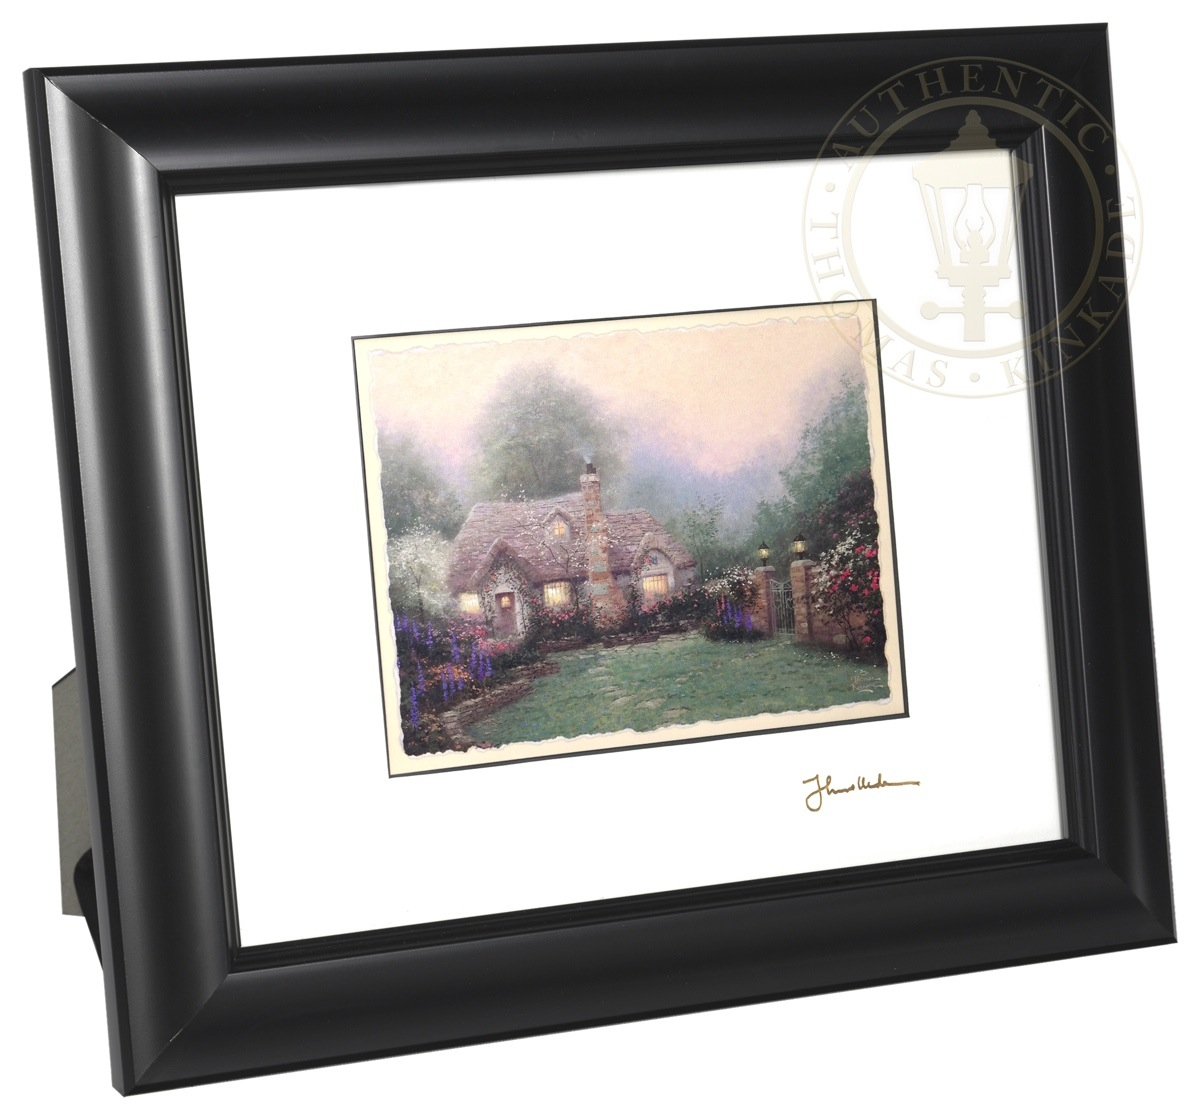 Evening At Merritts Cottage 8 X 10 Framed Matted Print Satin